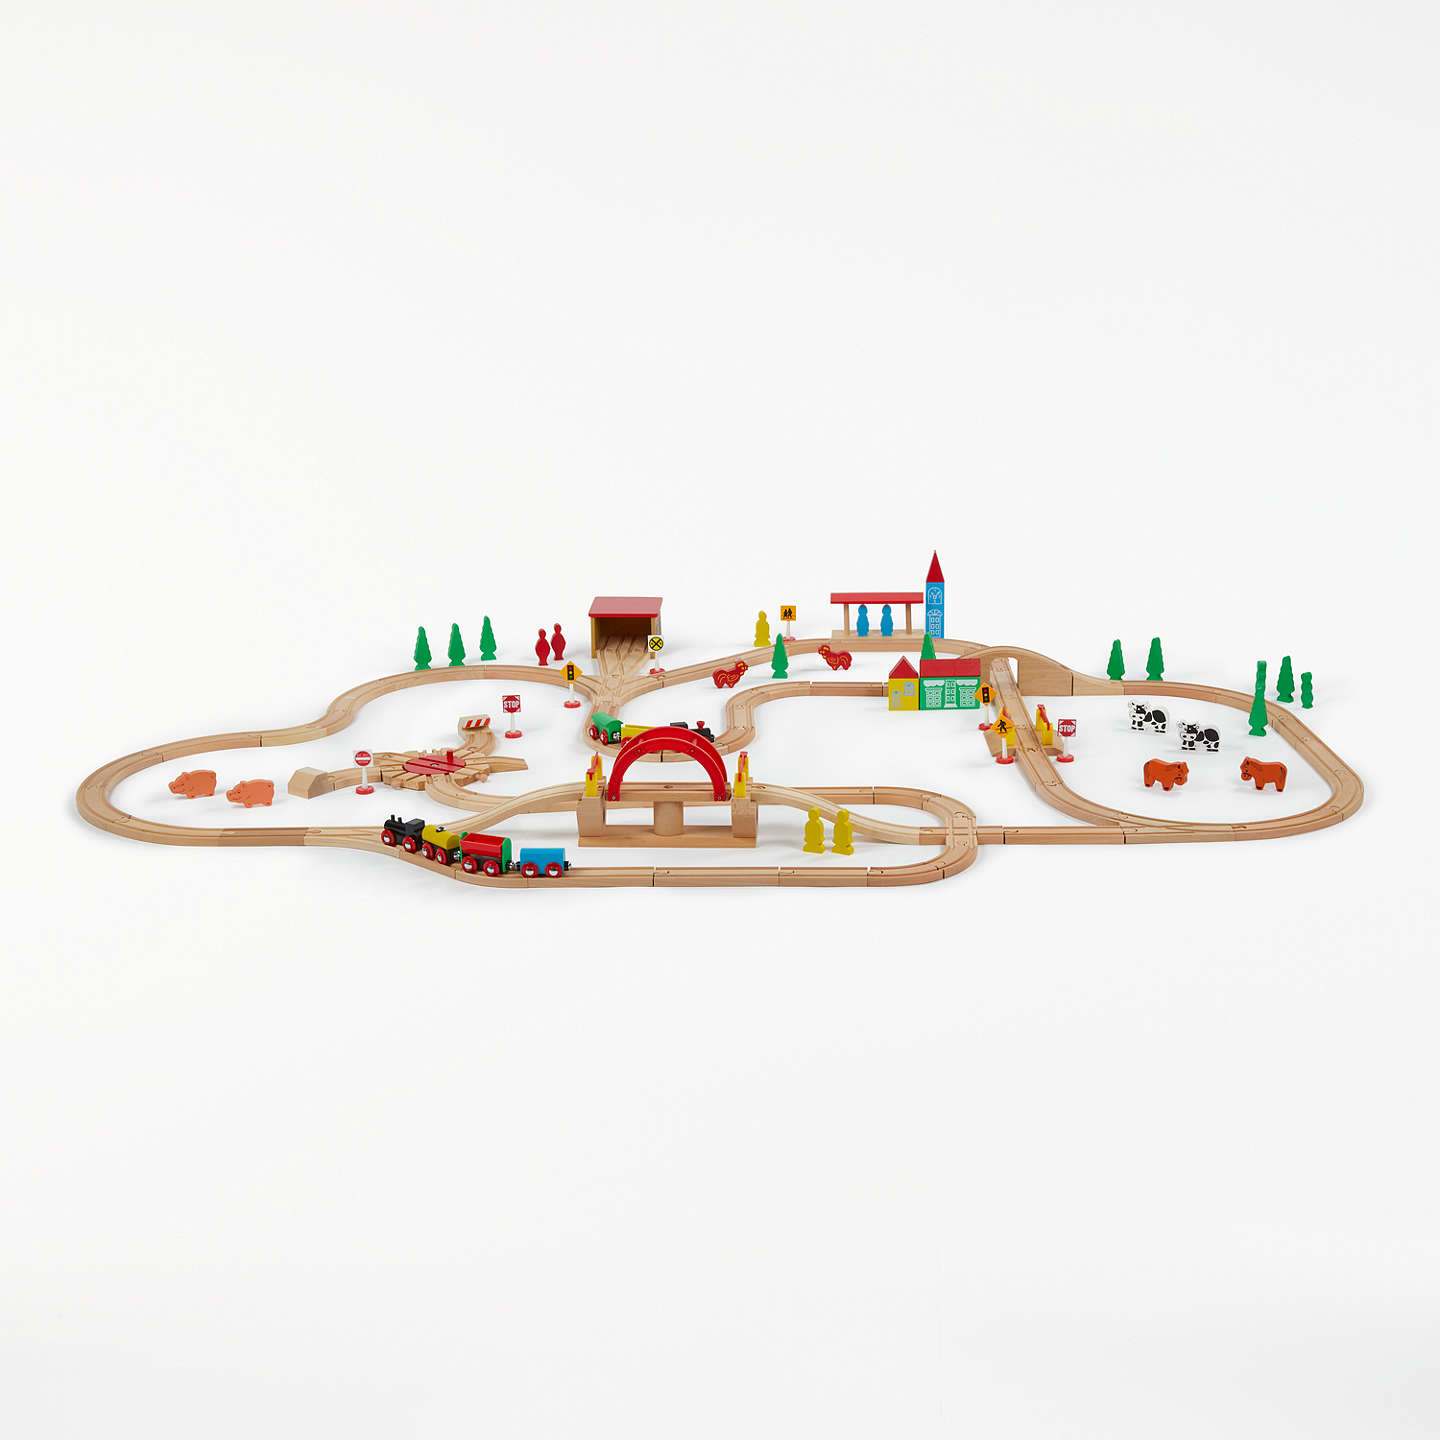 BuyJohn Lewis 120 Piece Train Set Online at johnlewis.com